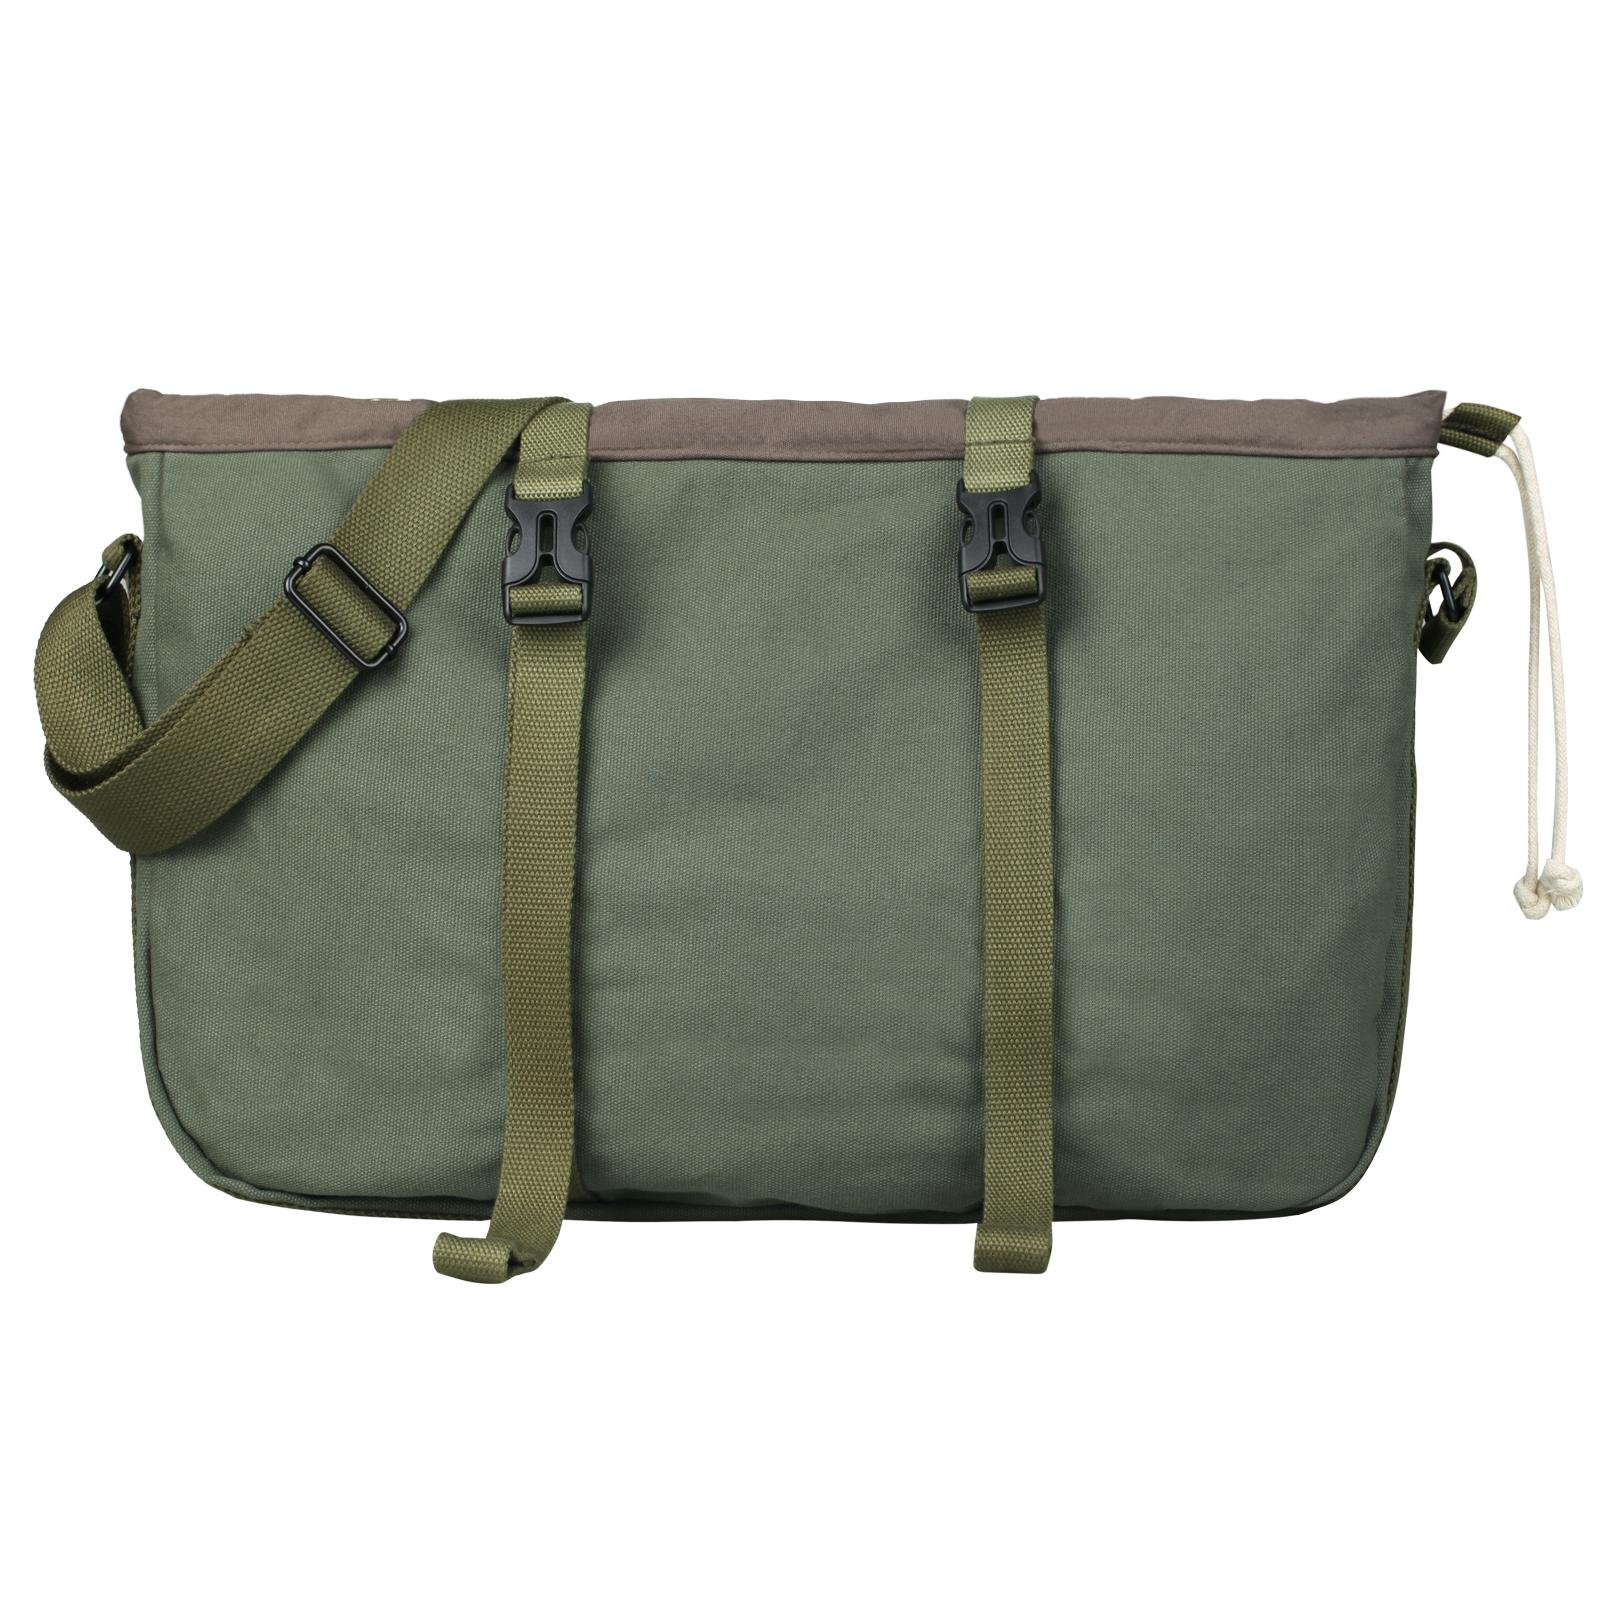 Superzero Water Resistant Canvas Messenger Shoulder Bag For MenWomen,Vintage Business Laptop Computer Bag Fit Laptops 13'', 14'' and up to 15.6 Inches by Superzero (Image #1)